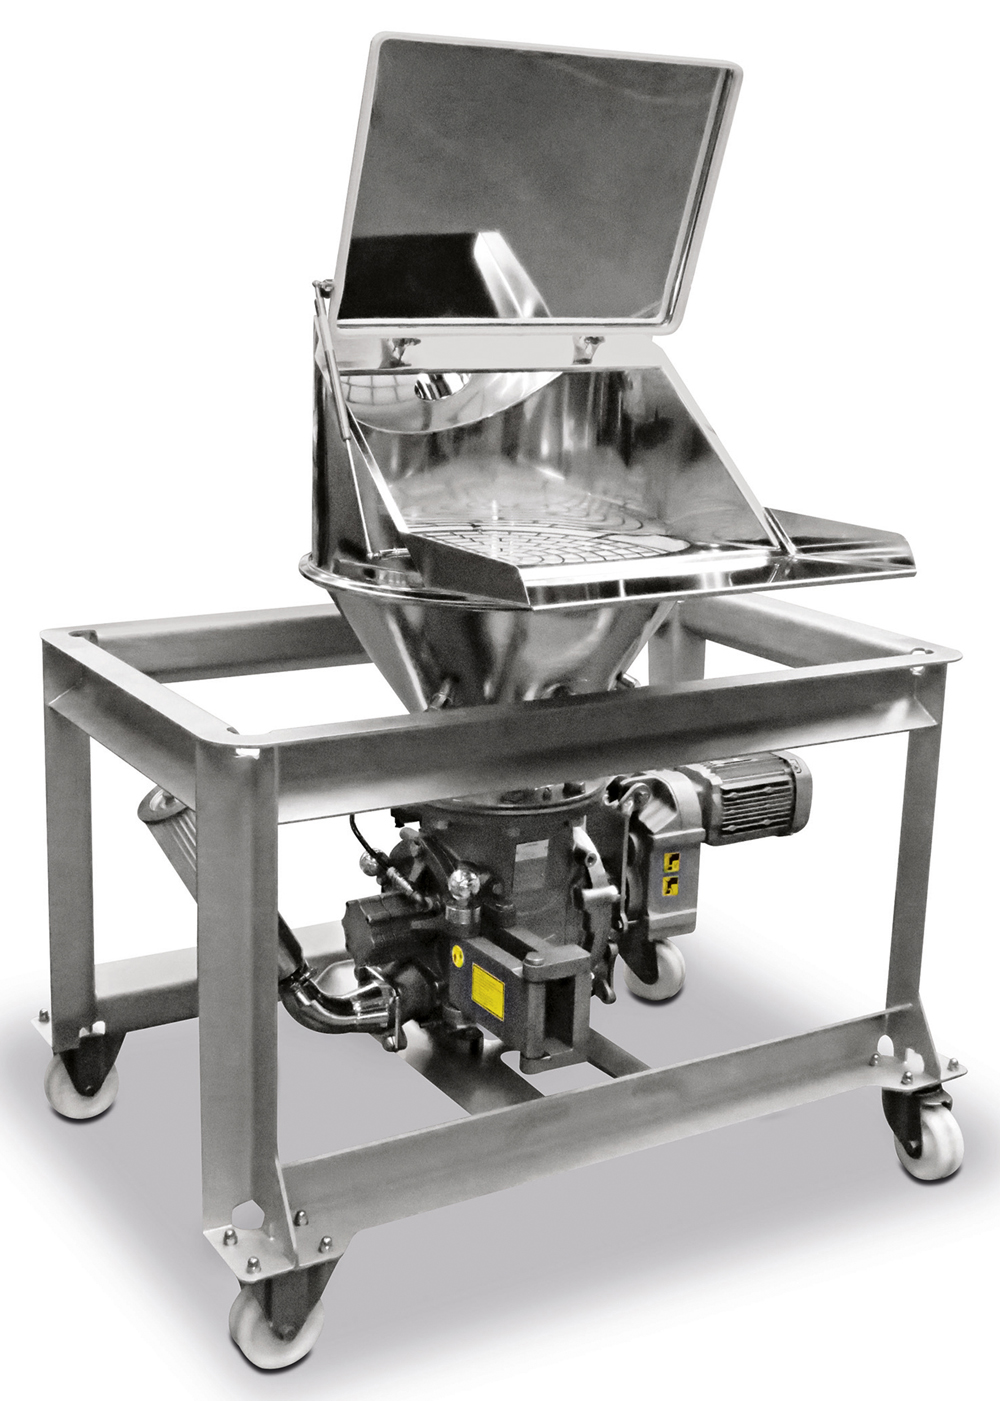 Manual bag dump station from Coperion K-Tron for clean and dust-free unloading of bulk materials from bags, equipped with a ZXD 200 rotary valve with FXS (Full Access System) from Coperion. Image: Coperion K-Tron, Niederlenz, Switzerland